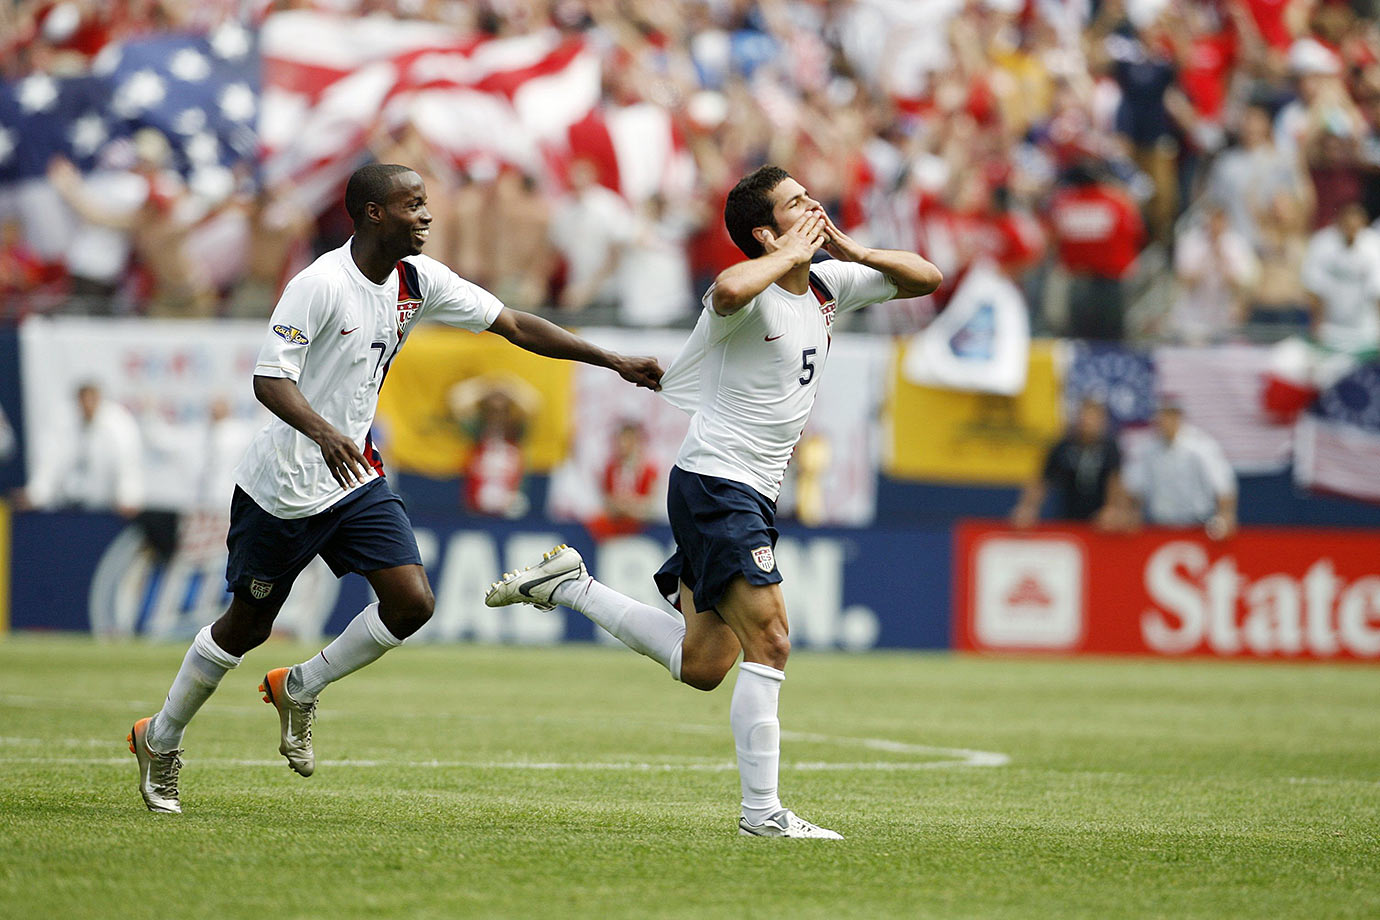 Down 1-0, second-half goals from Landon Donovan and Benny Feilhaber gave the U.S. the victory in the 2007 Gold Cup finals. The win earned the Americans a spot in the 2009 Confederations Cup, where they achieved their famous upset over Spain.